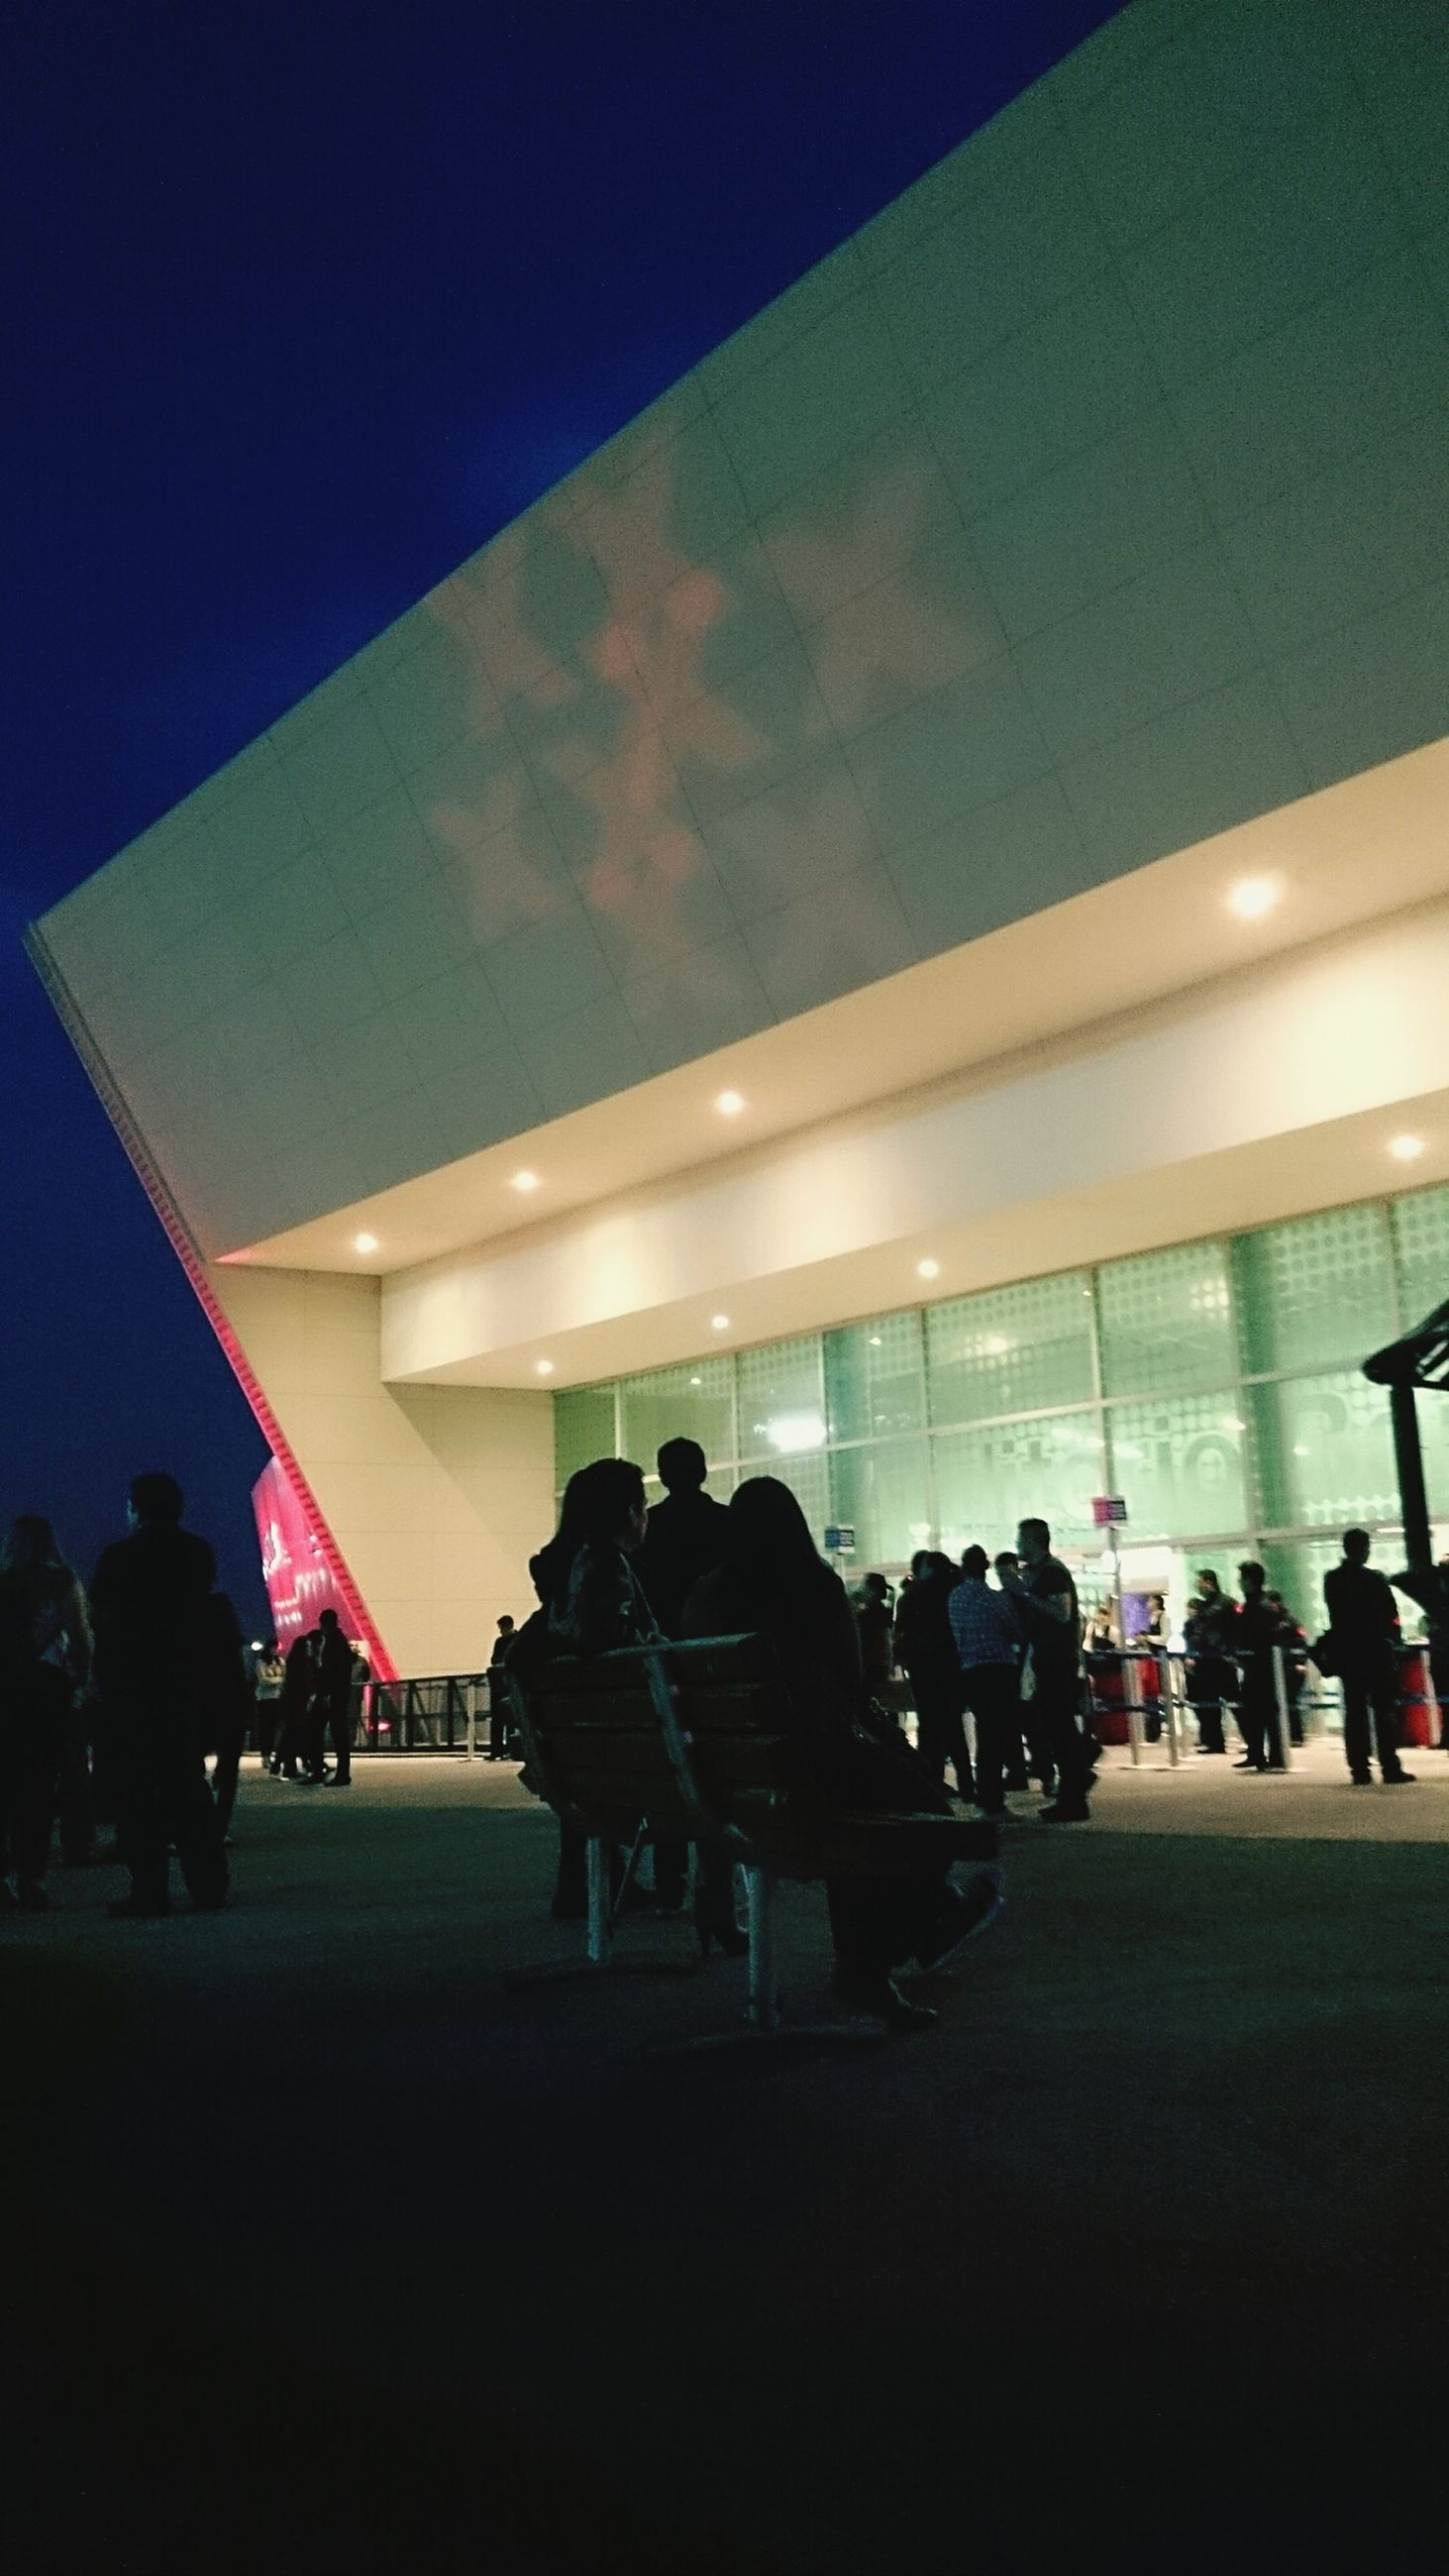 large group of people, person, men, indoors, architecture, illuminated, lifestyles, built structure, leisure activity, crowd, city life, night, lighting equipment, city, modern, building exterior, ceiling, group of people, arts culture and entertainment